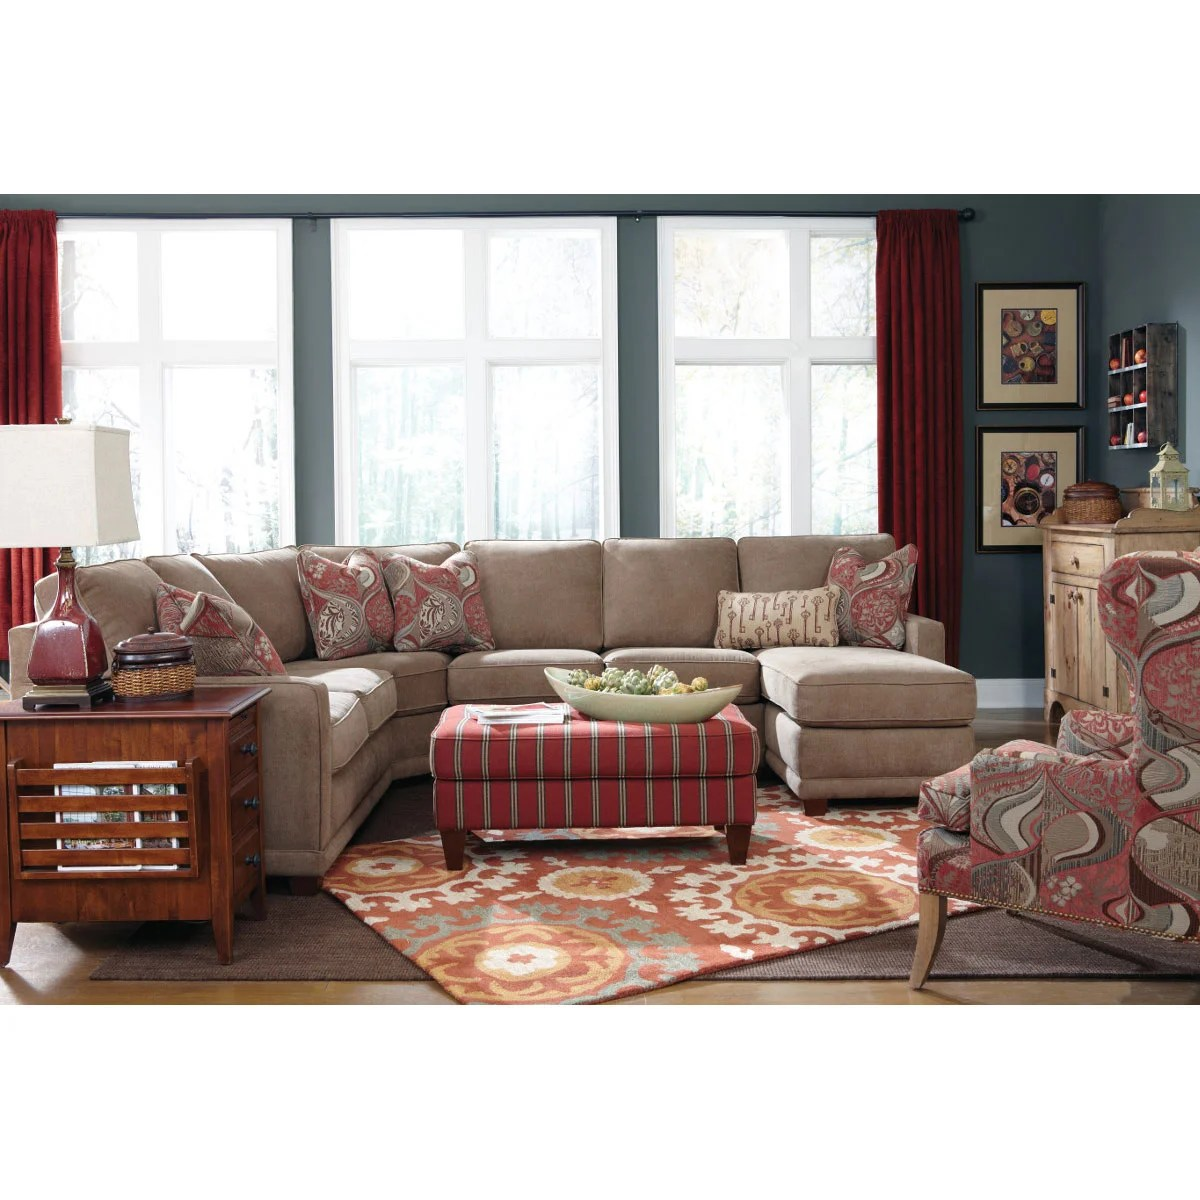 fabric cover for leather sofa how to get rid of ink stains on kennedy sectional